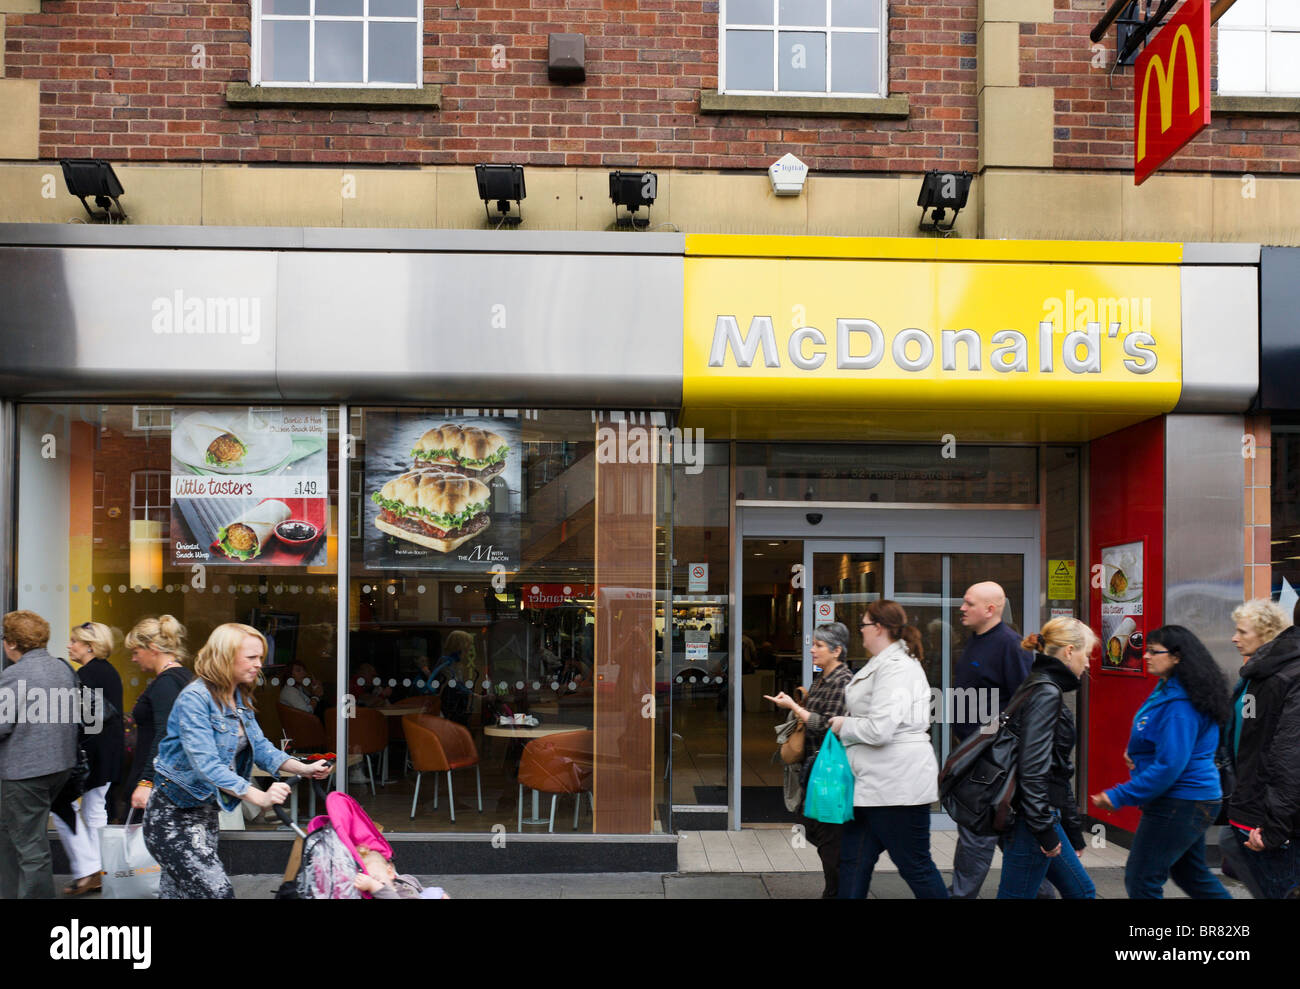 McDonald's restaurant in Chester town centre, Cheshire, England, UK - Stock Image